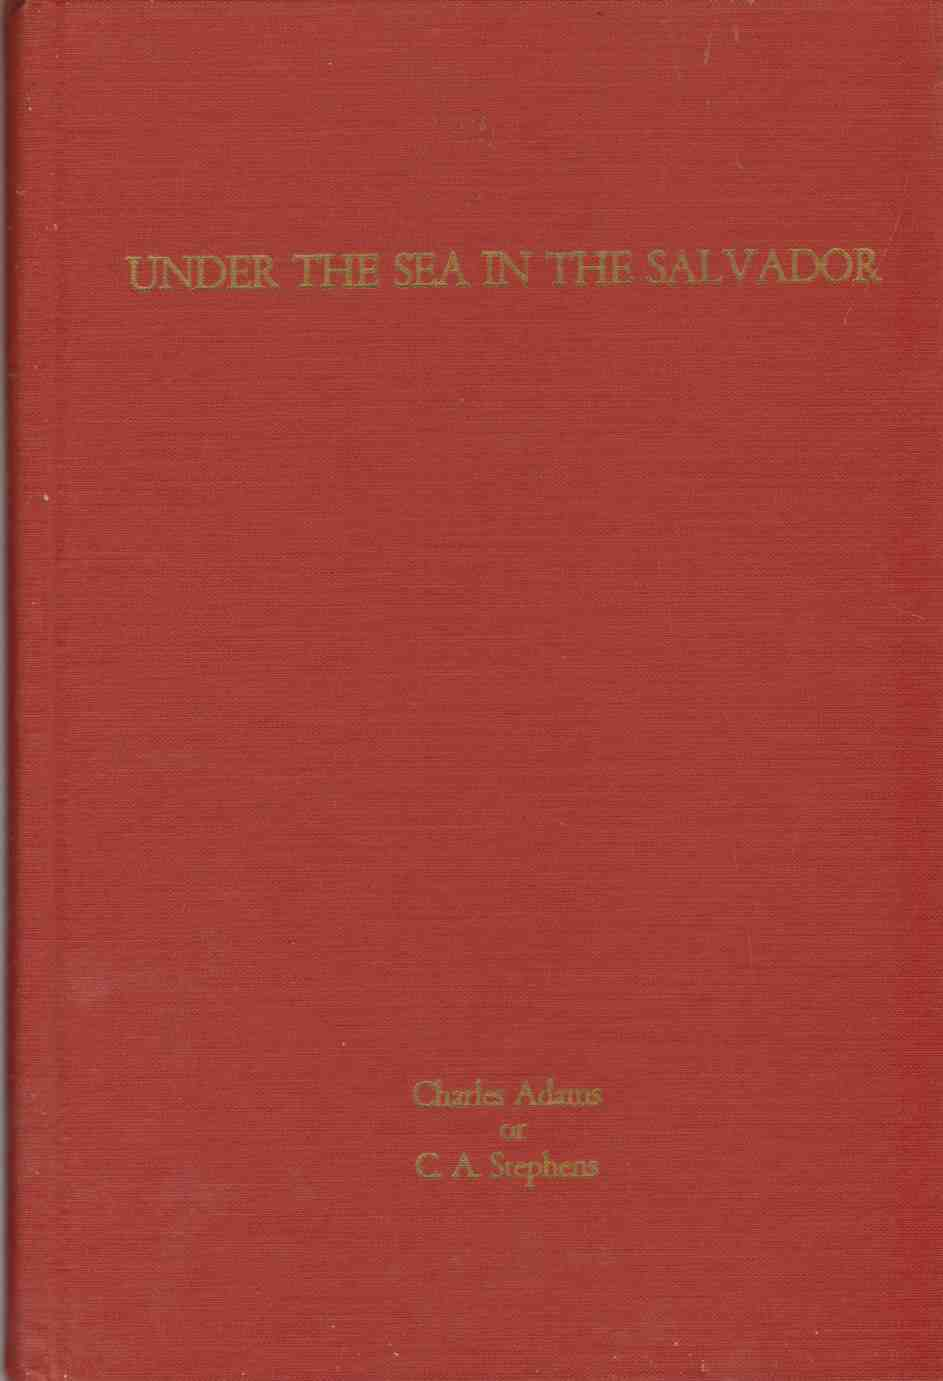 Image for UNDER THE SEA IN THE SALVADOR The Story-Teller's Edition